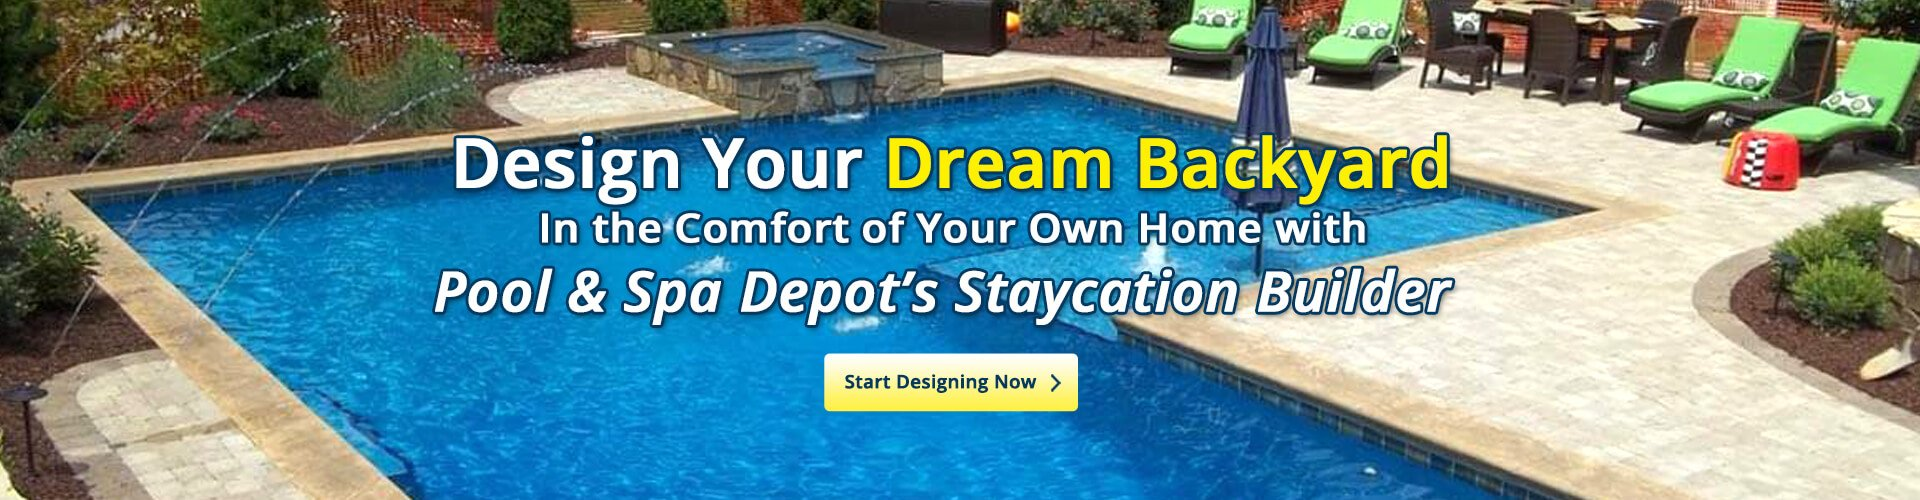 Particular Sign Up Our Custom Builder Nashville Inground S Brentwood Clarksville Spa Depot Cookeville Tn Reviews Spa Depot Above Ground S houzz 01 Pool And Spa Depot